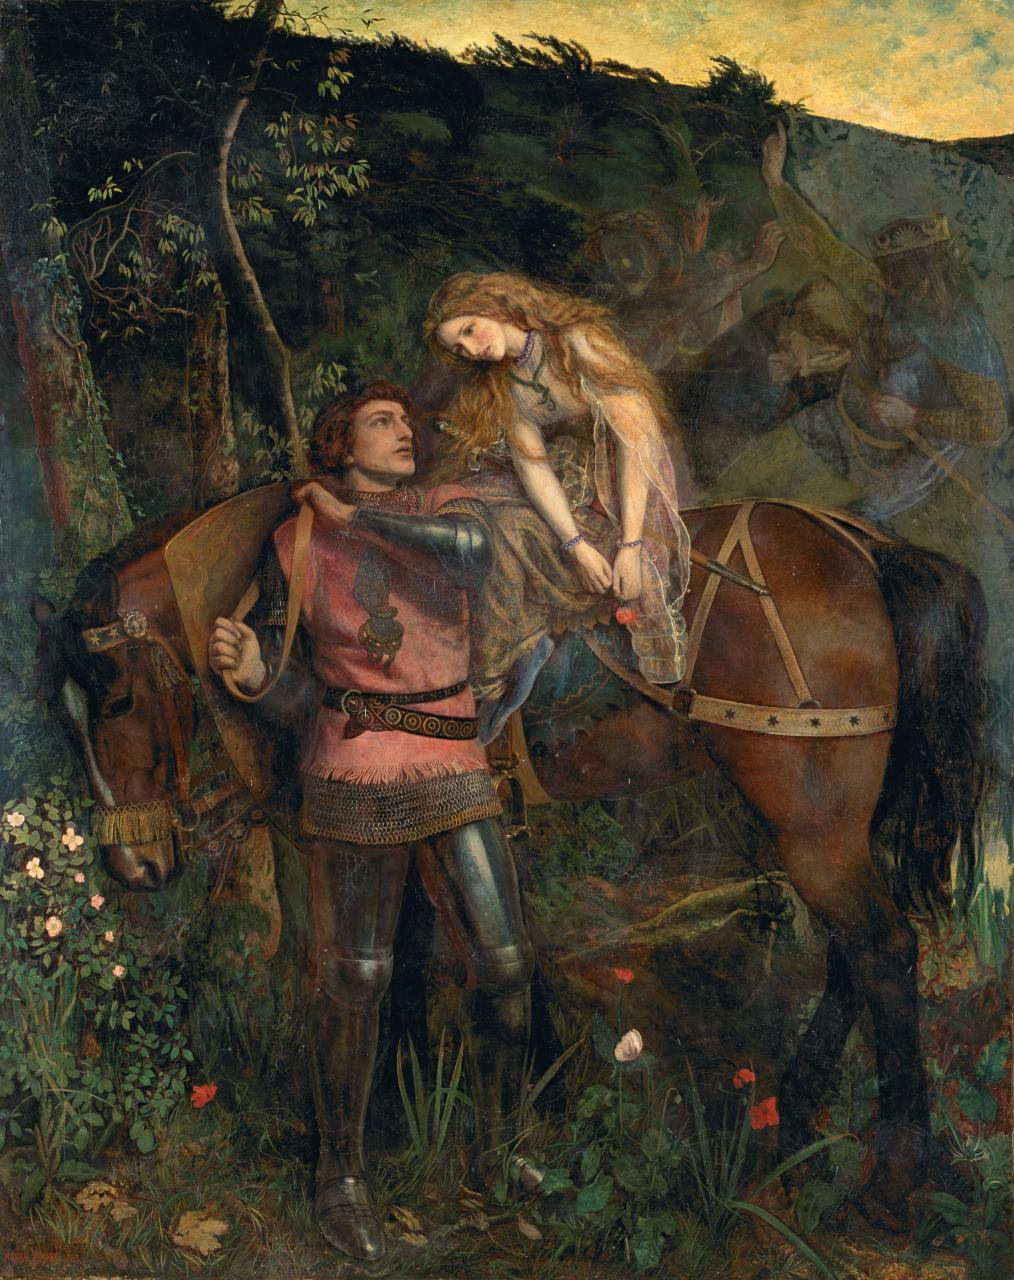 Medieval Moderns: The Pre-Raphaelite Brotherhood at NGV, 2015